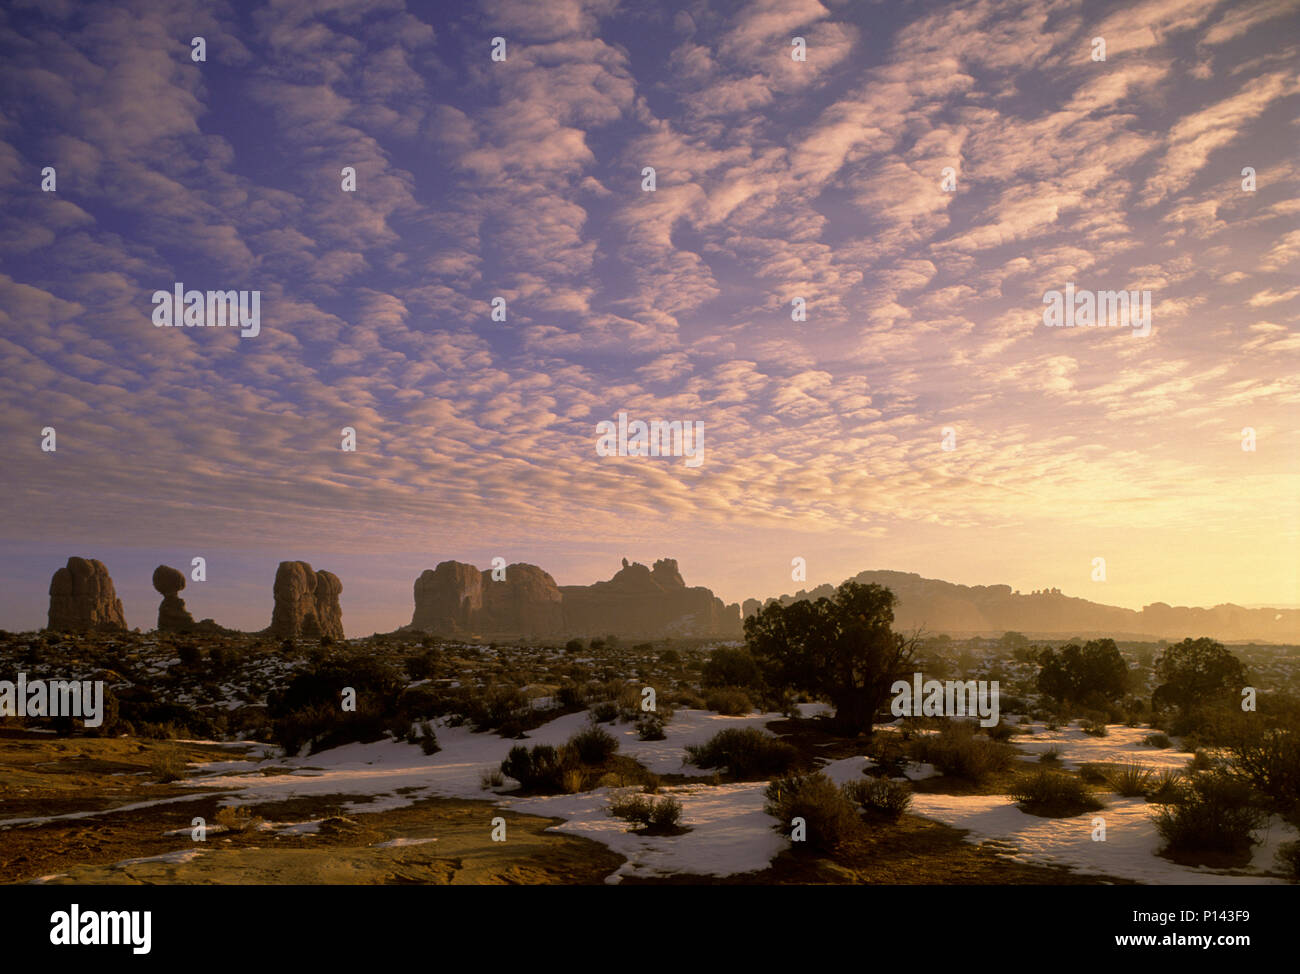 Arches National Park: near Moab, rock formation and shrub with late light and La Sal Mountains in the distance, Utah, USA Stock Photo